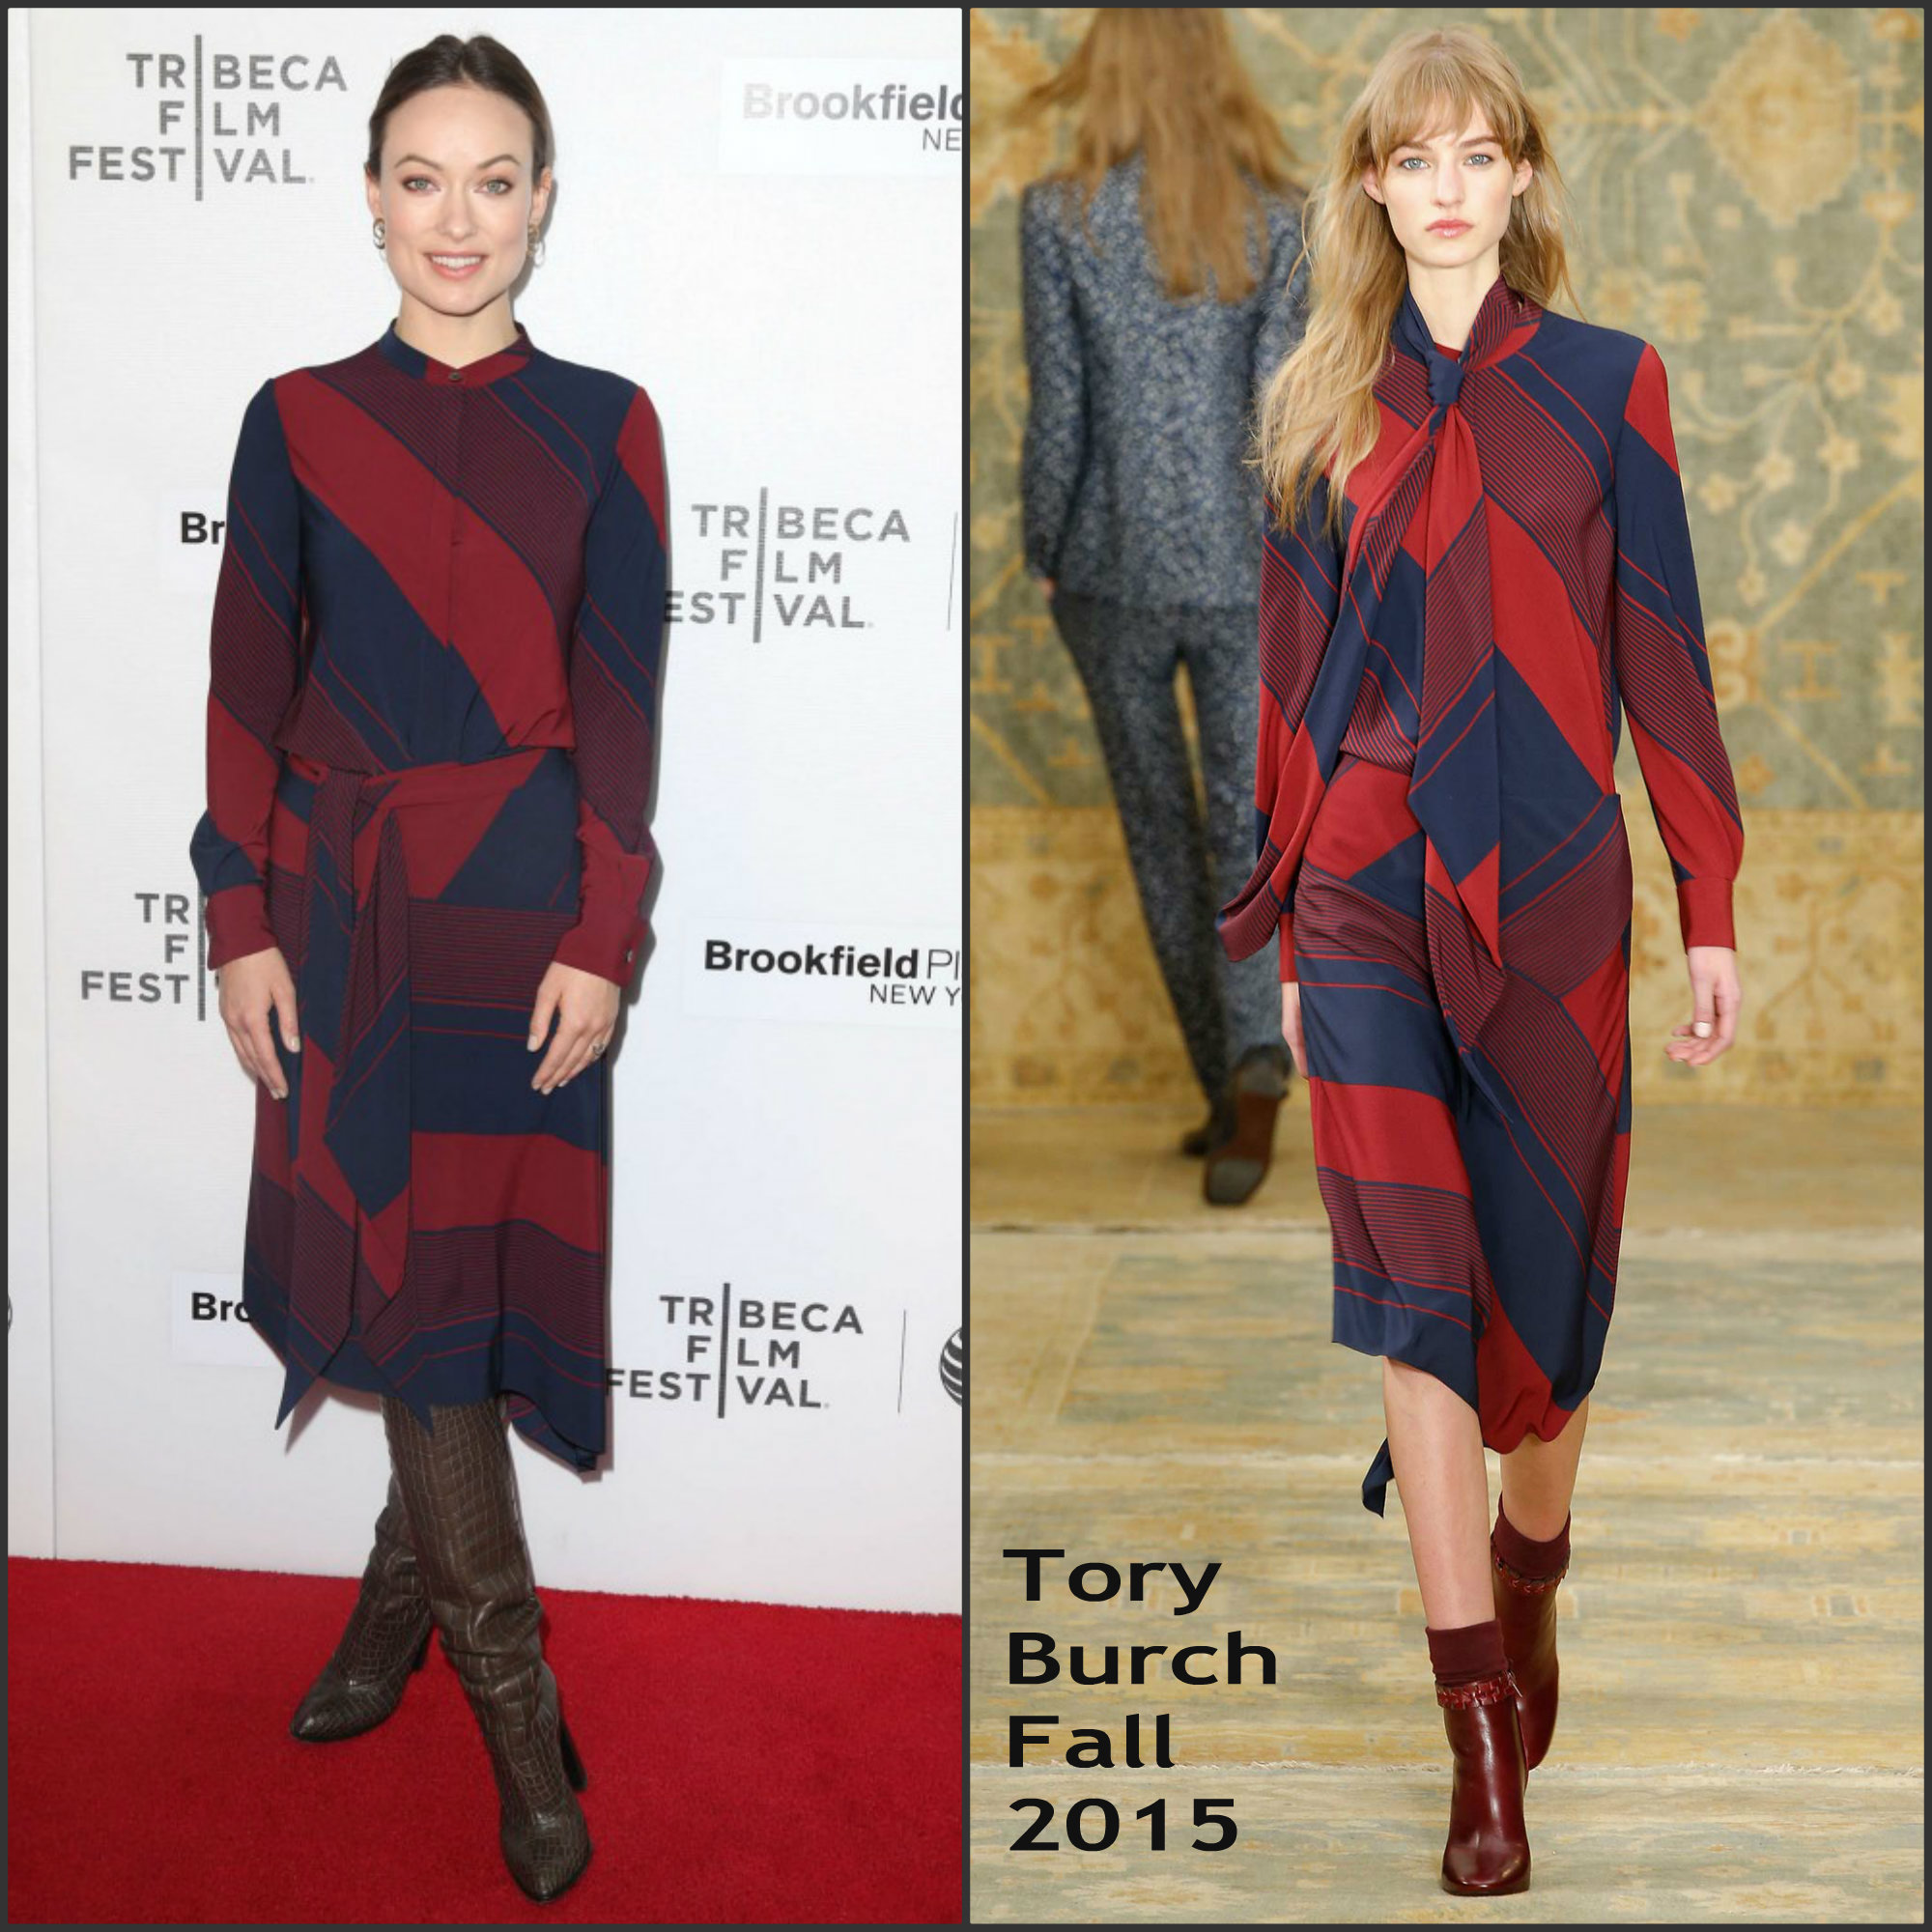 Olivia-Wilde-in-Tory-Burch-at-Body-Team-12-Premiere-Tribeca-Film-Festival